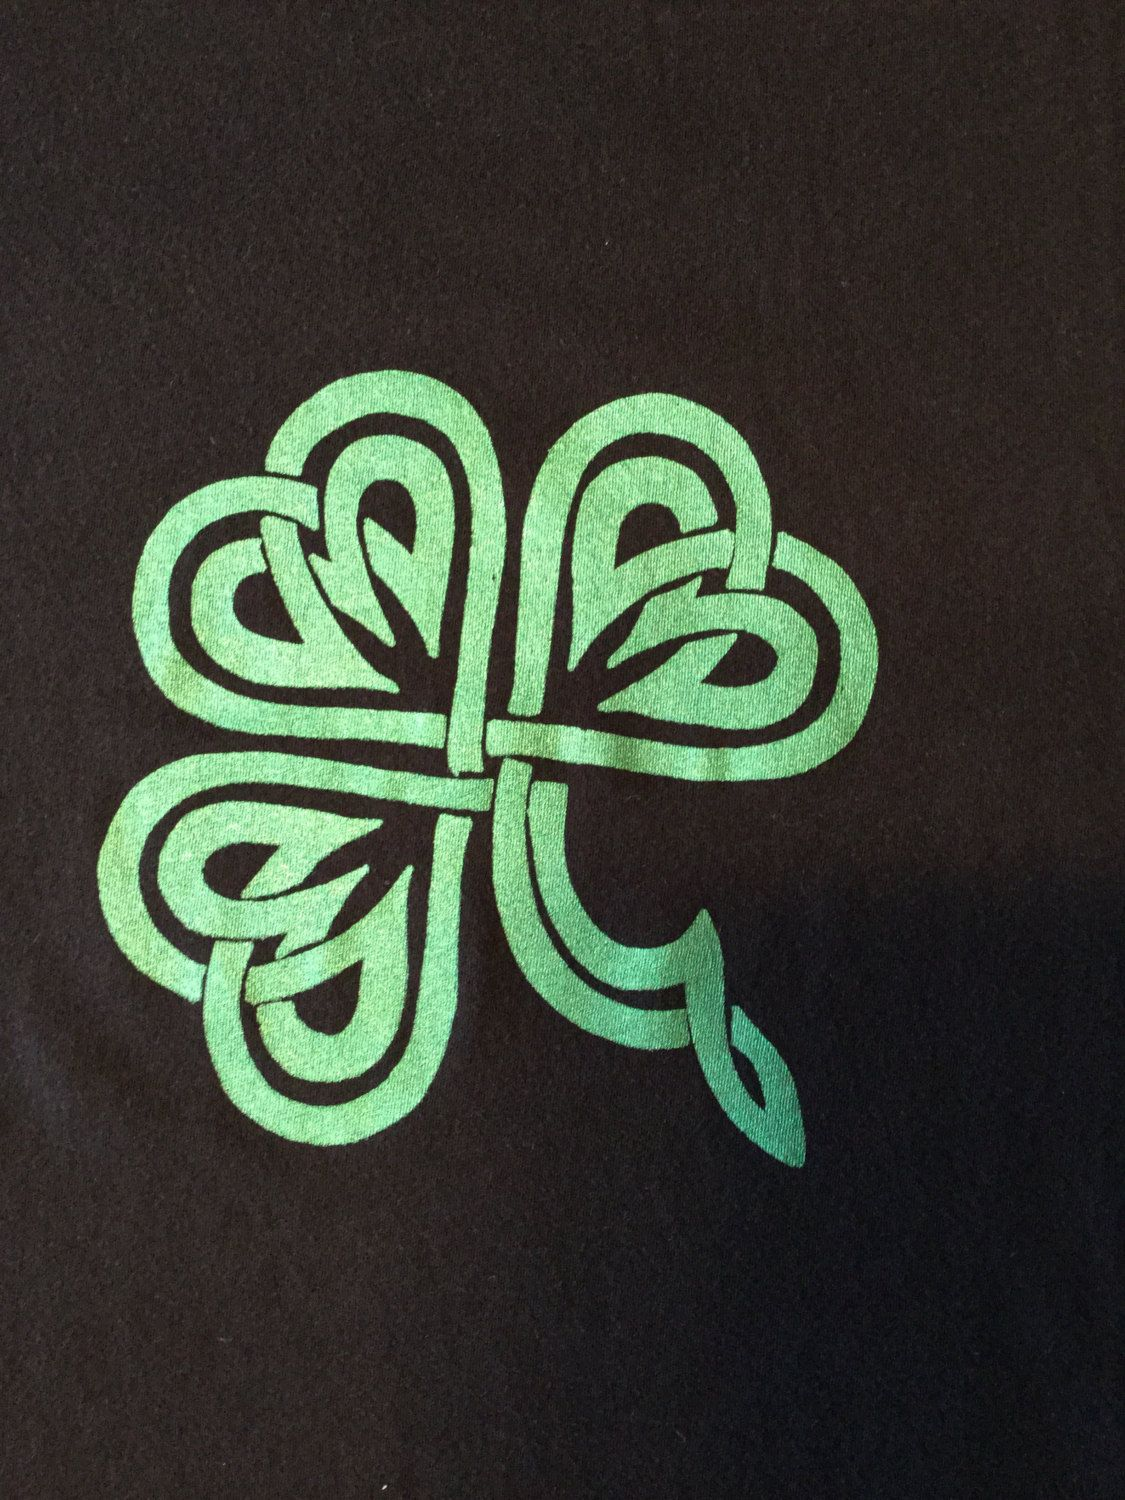 Celtic knot shamrock shirt st Patrick\'s day by Campchaoscrafts on ...